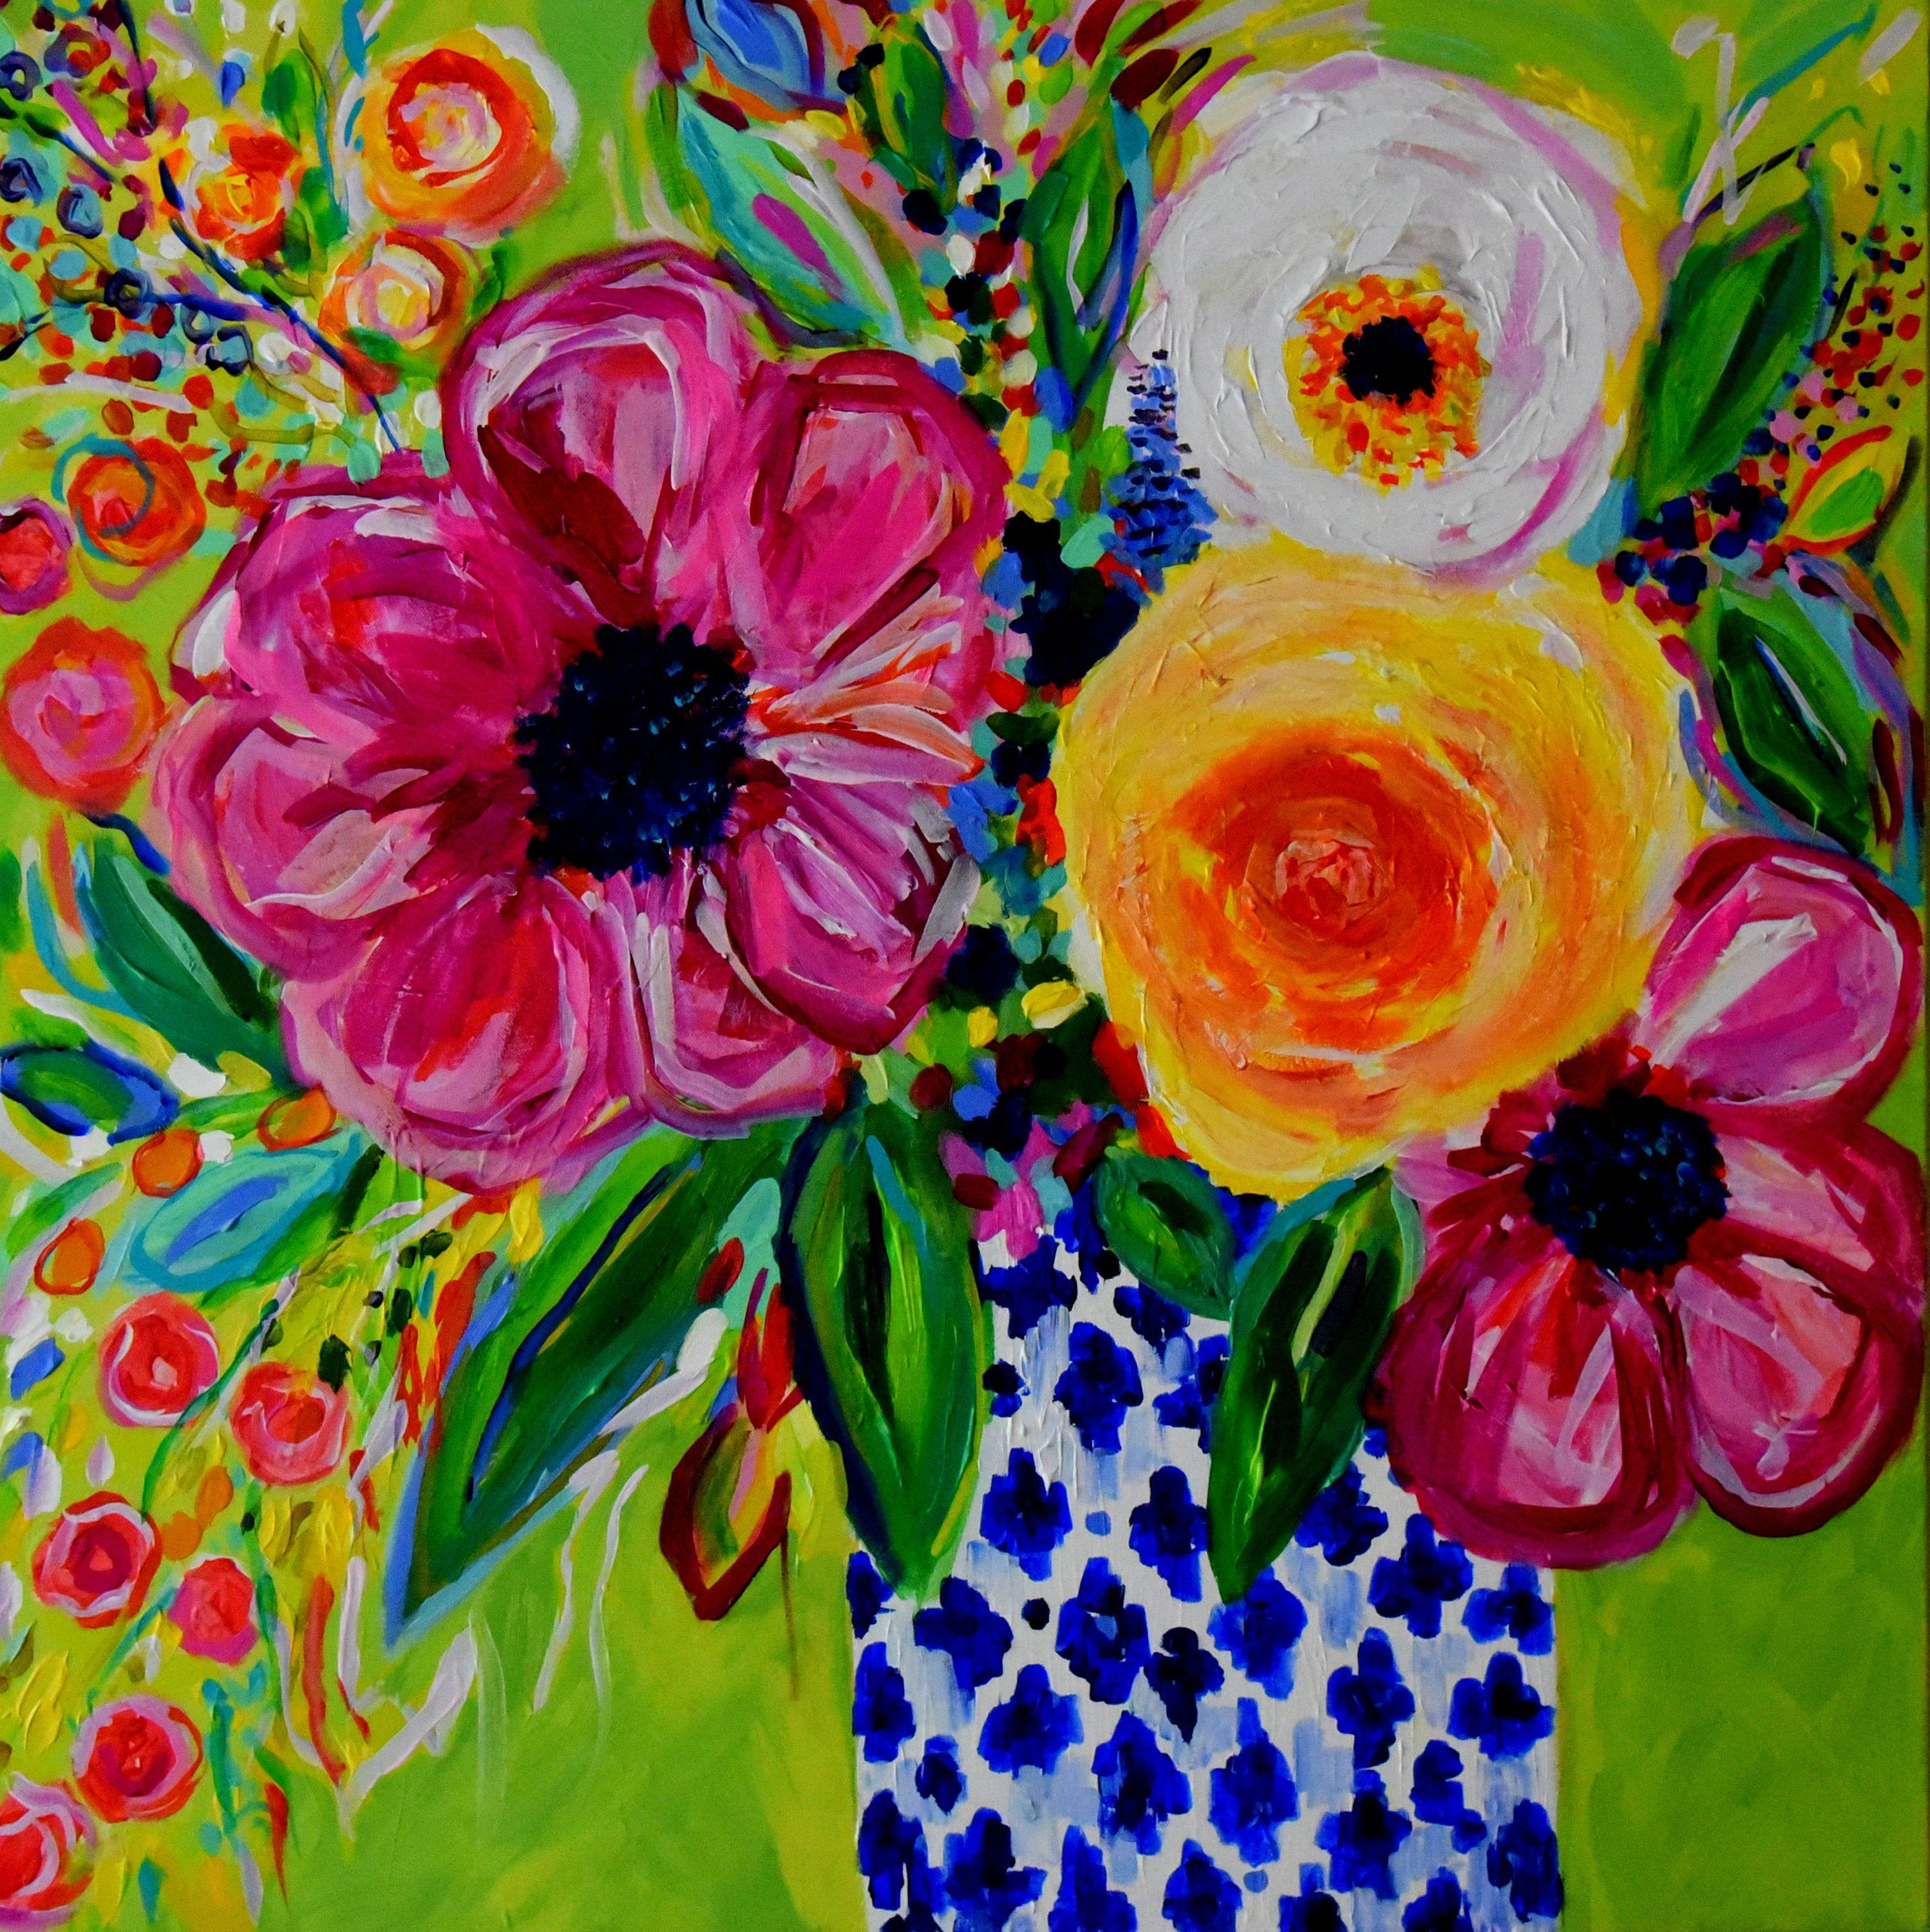 Still Life, Blue and White Ginger Jar Art, Colorful expressionistic flowers, abstract flowers, Fine Art PRINT, Giclee